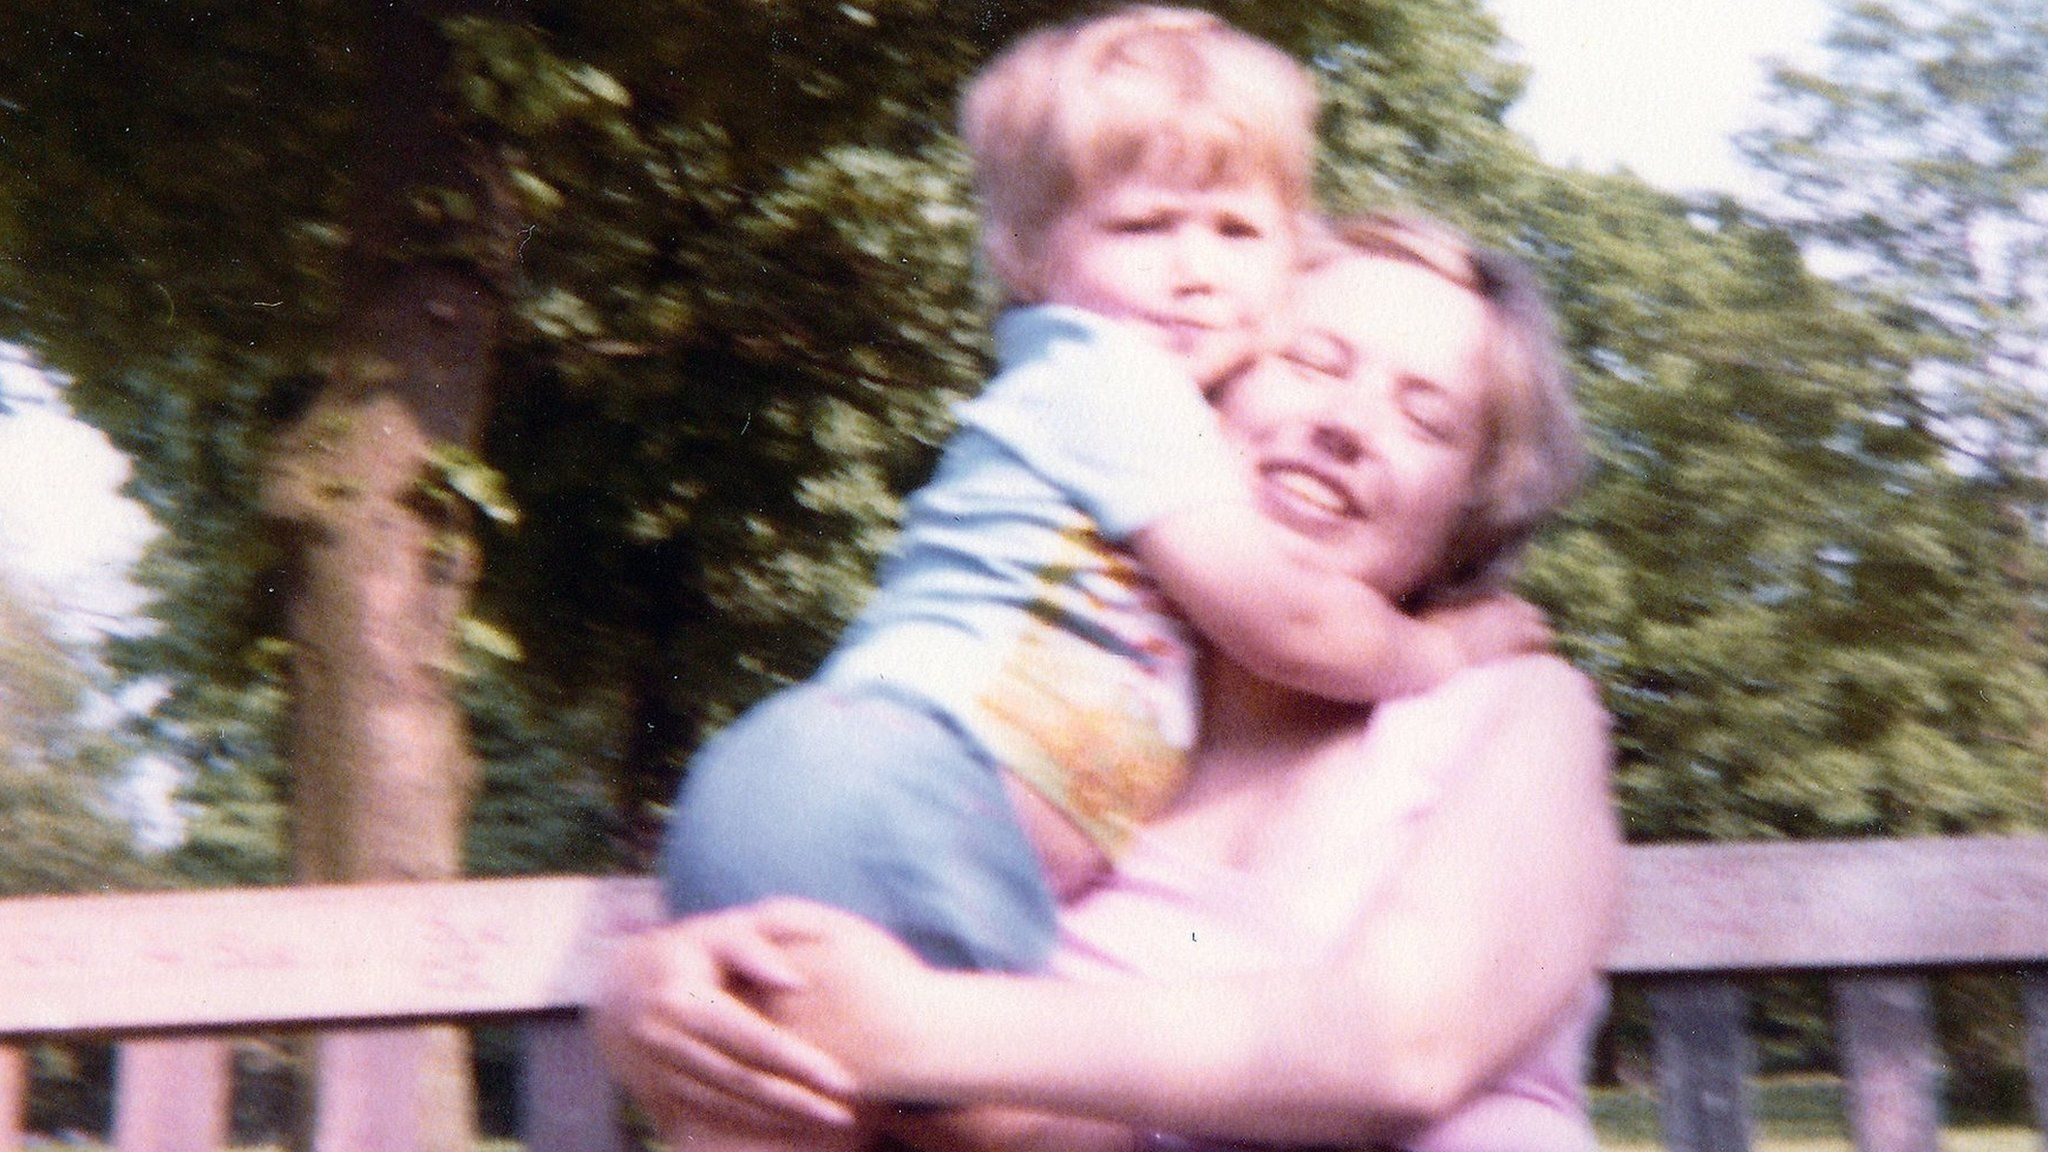 Iain Cunningham (aged two-and-a-half), with his mother, Irene Cunningham